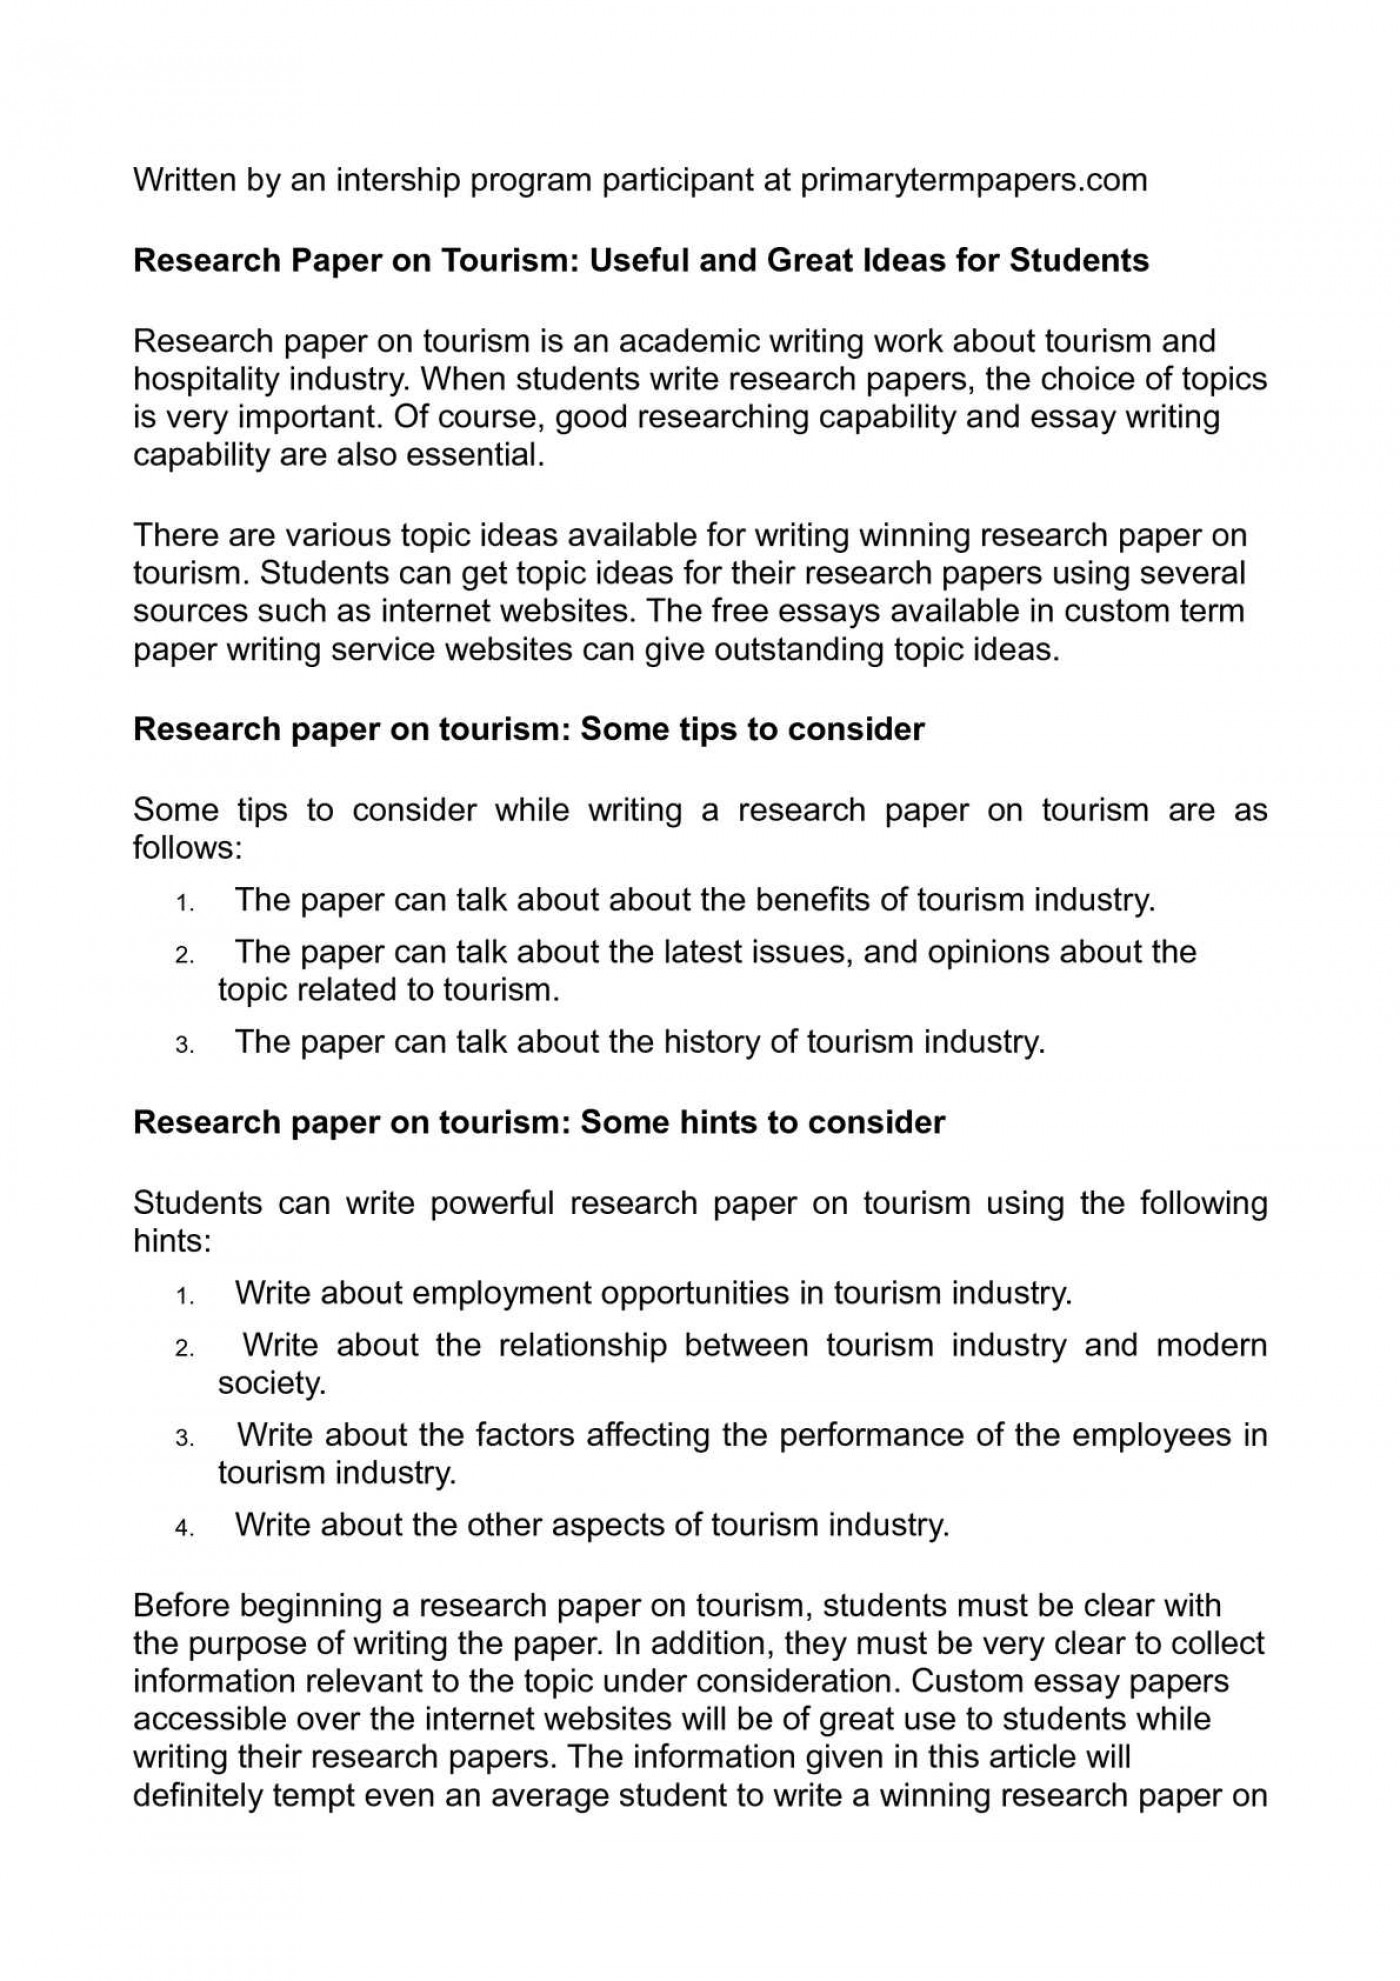 009 Research Paper Ideas For Fascinating Papers In Computer Science Middle School Topic High 1400